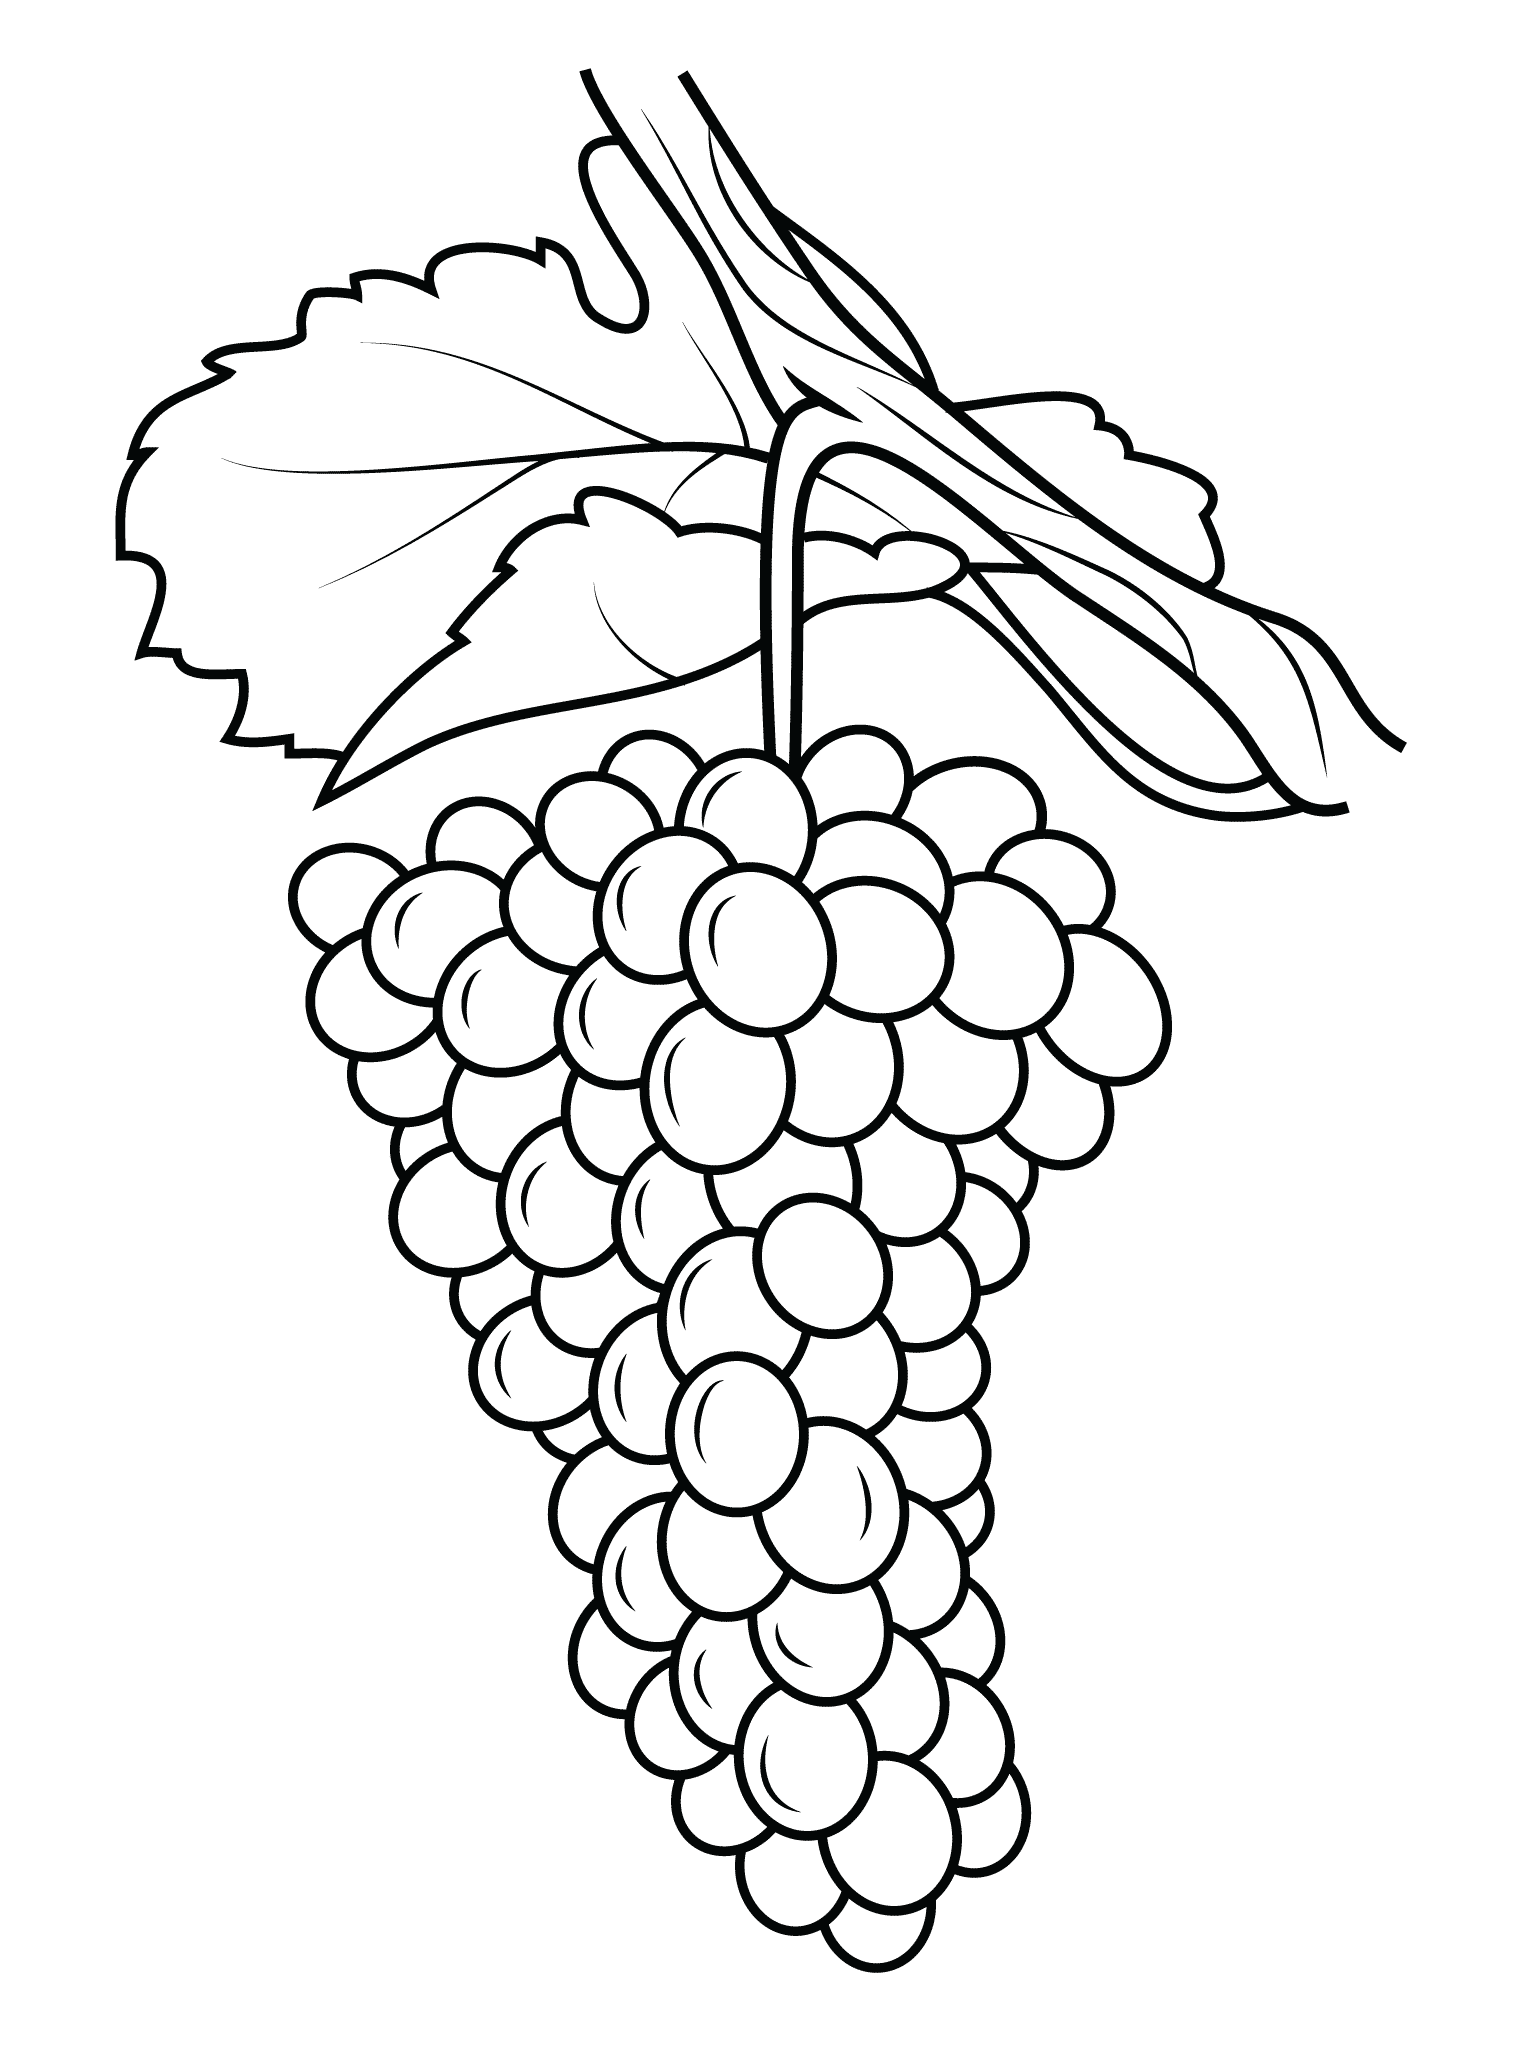 coloring picture of grapes grape coloring pages download and print grape coloring pages grapes of coloring picture